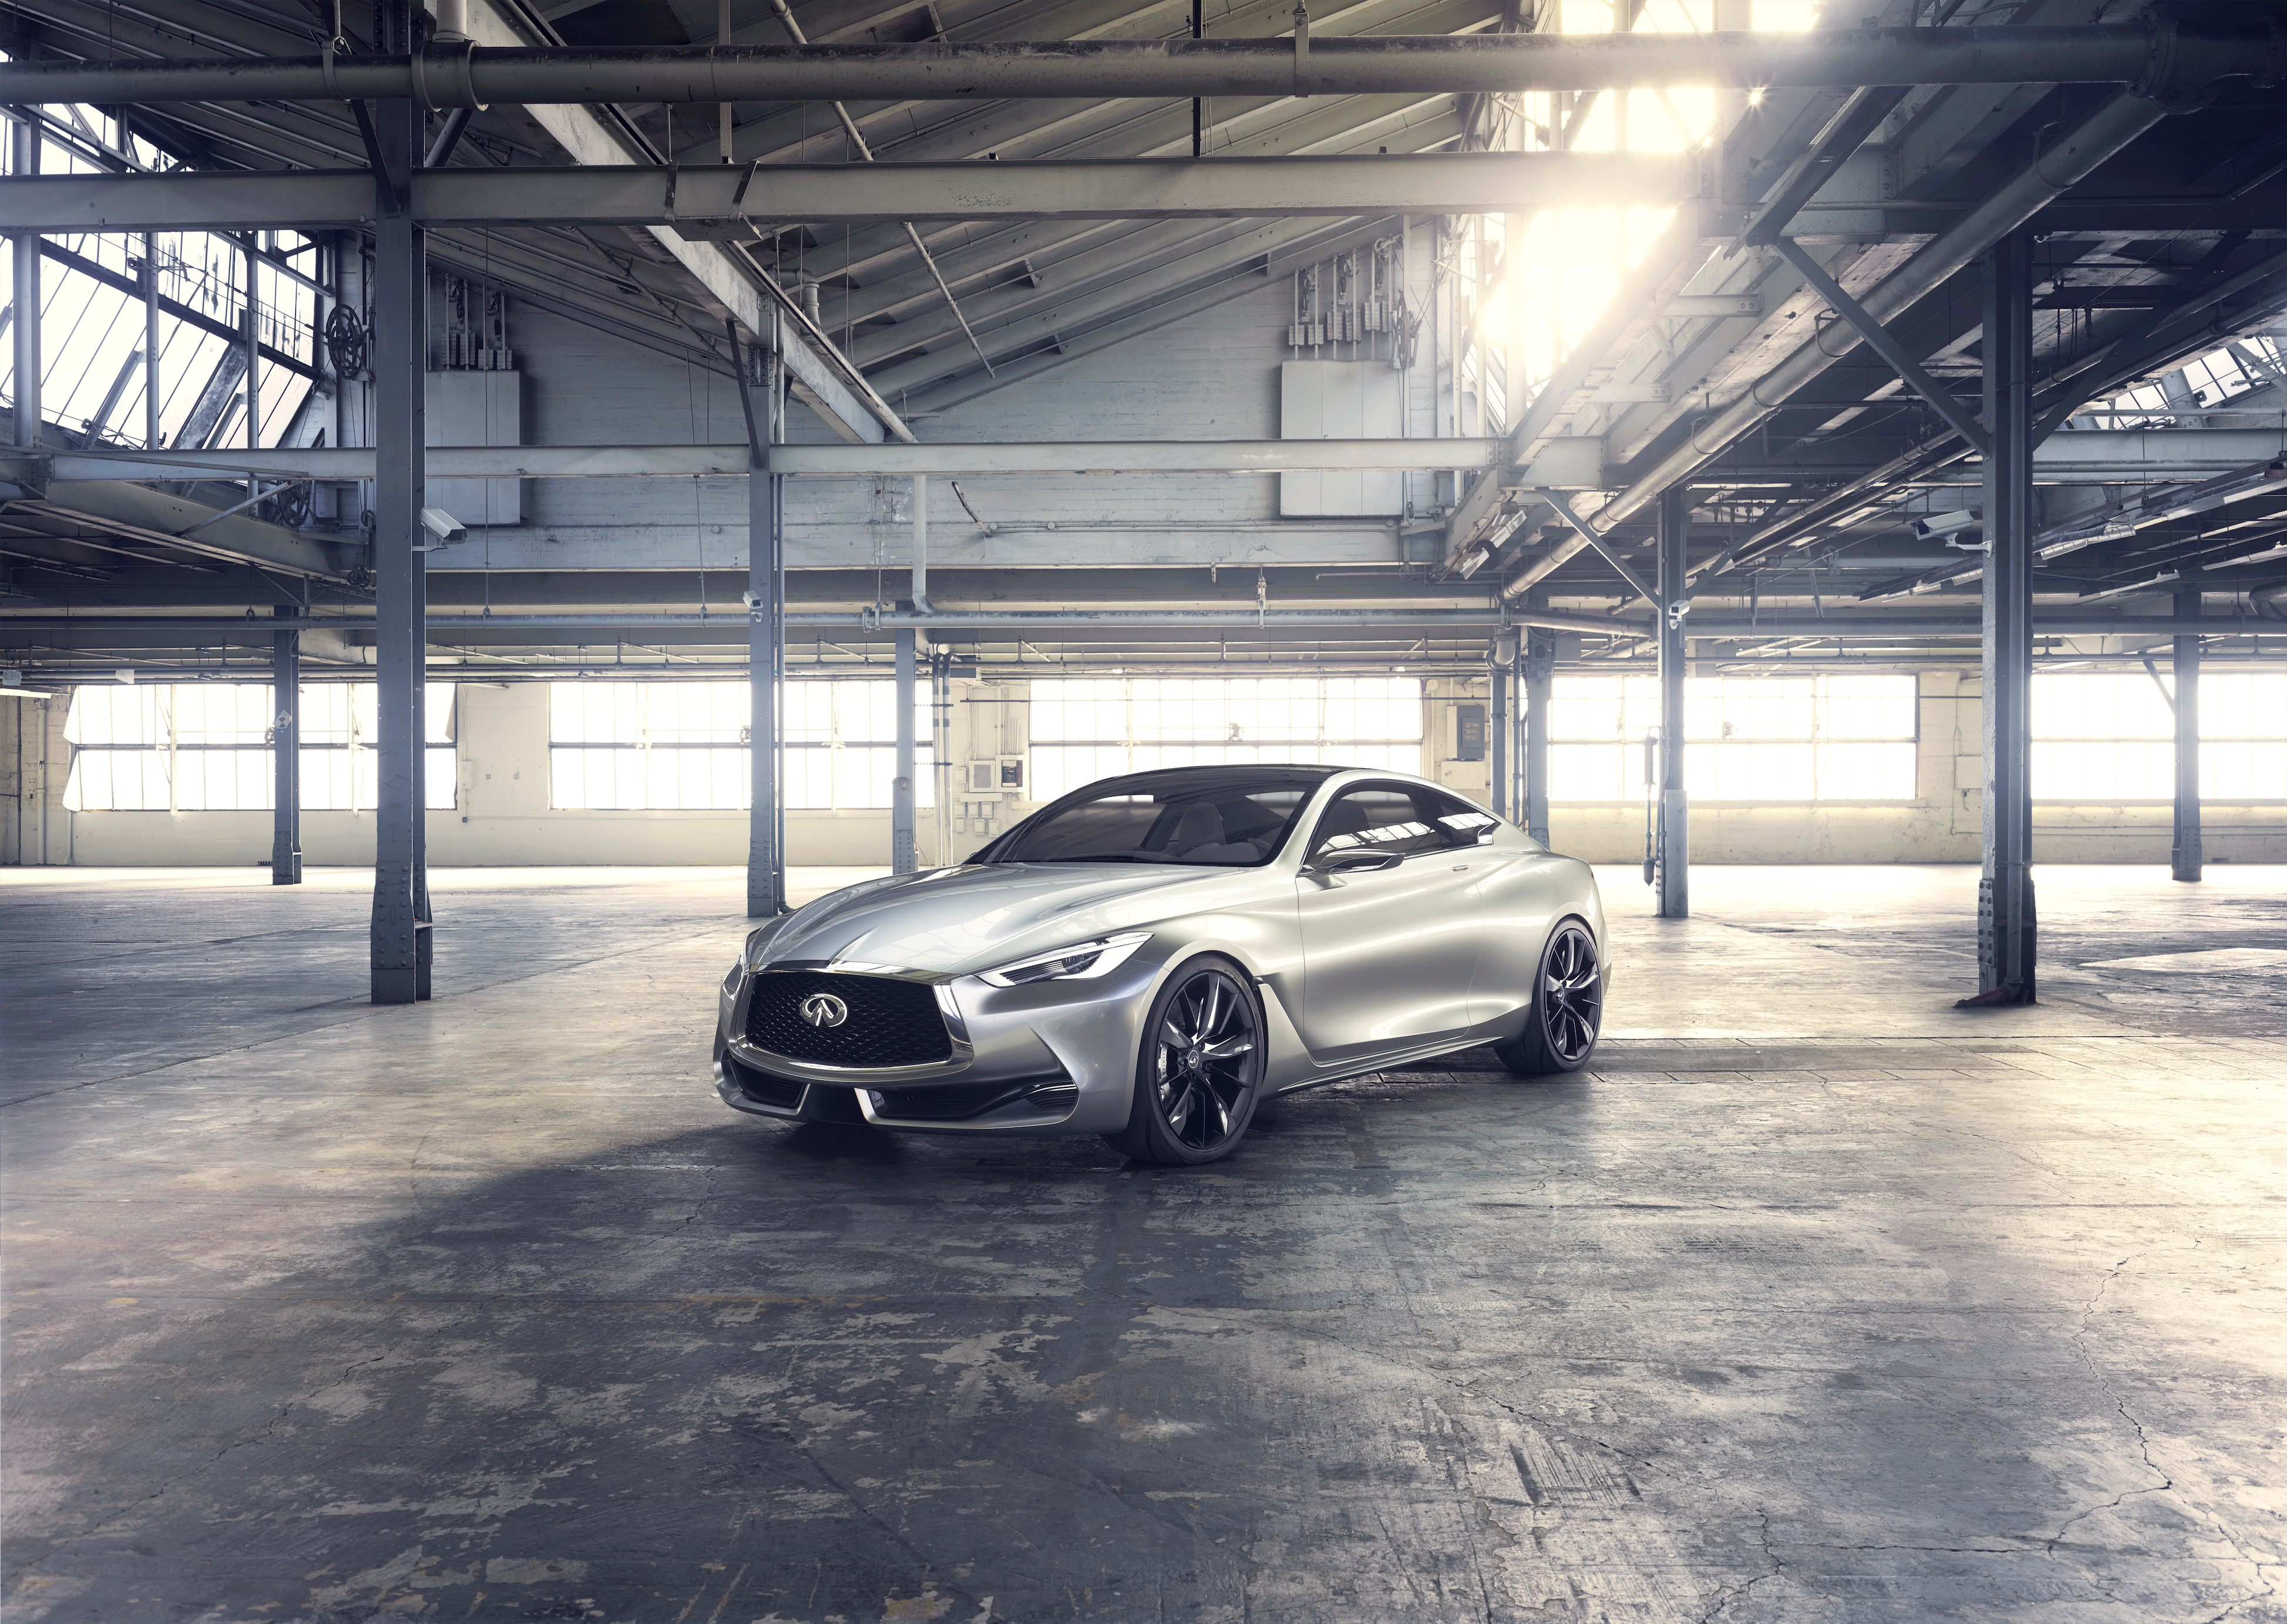 2015 Infiniti Q60 Coupe Performs Beyond Expectation